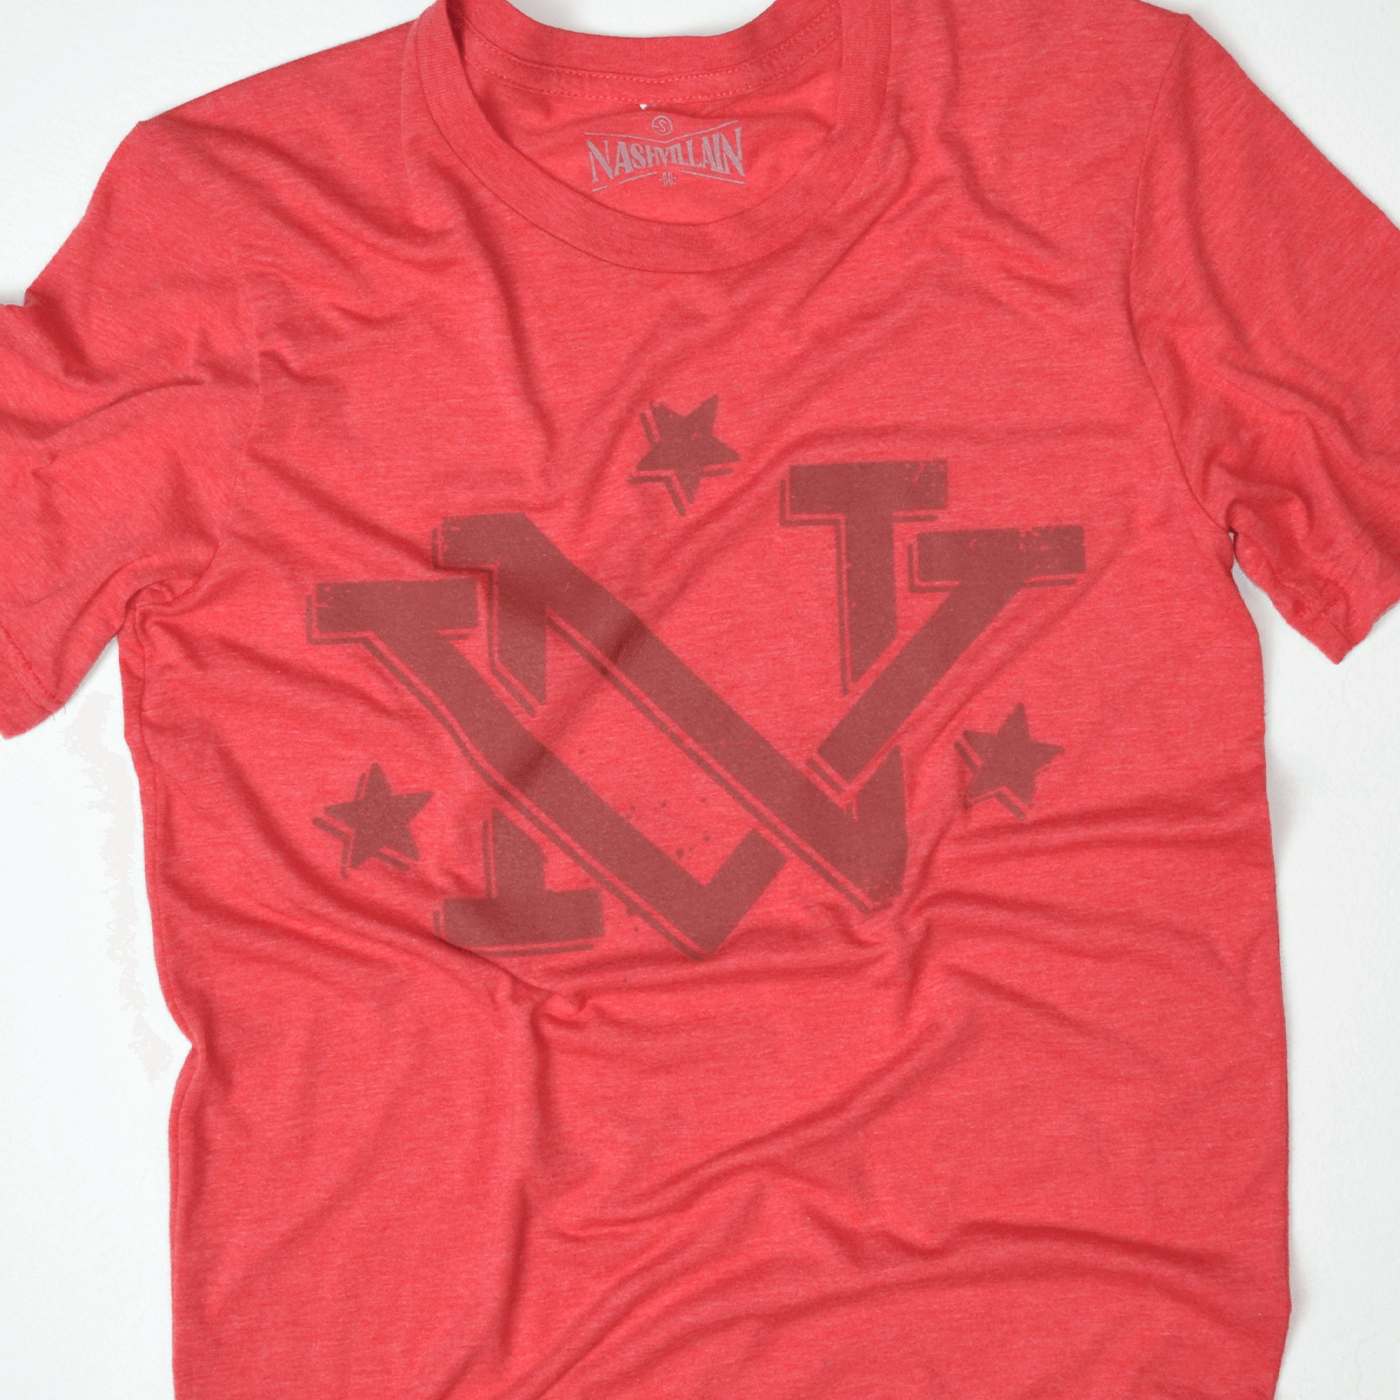 Red NV tennessee tristar shirt design